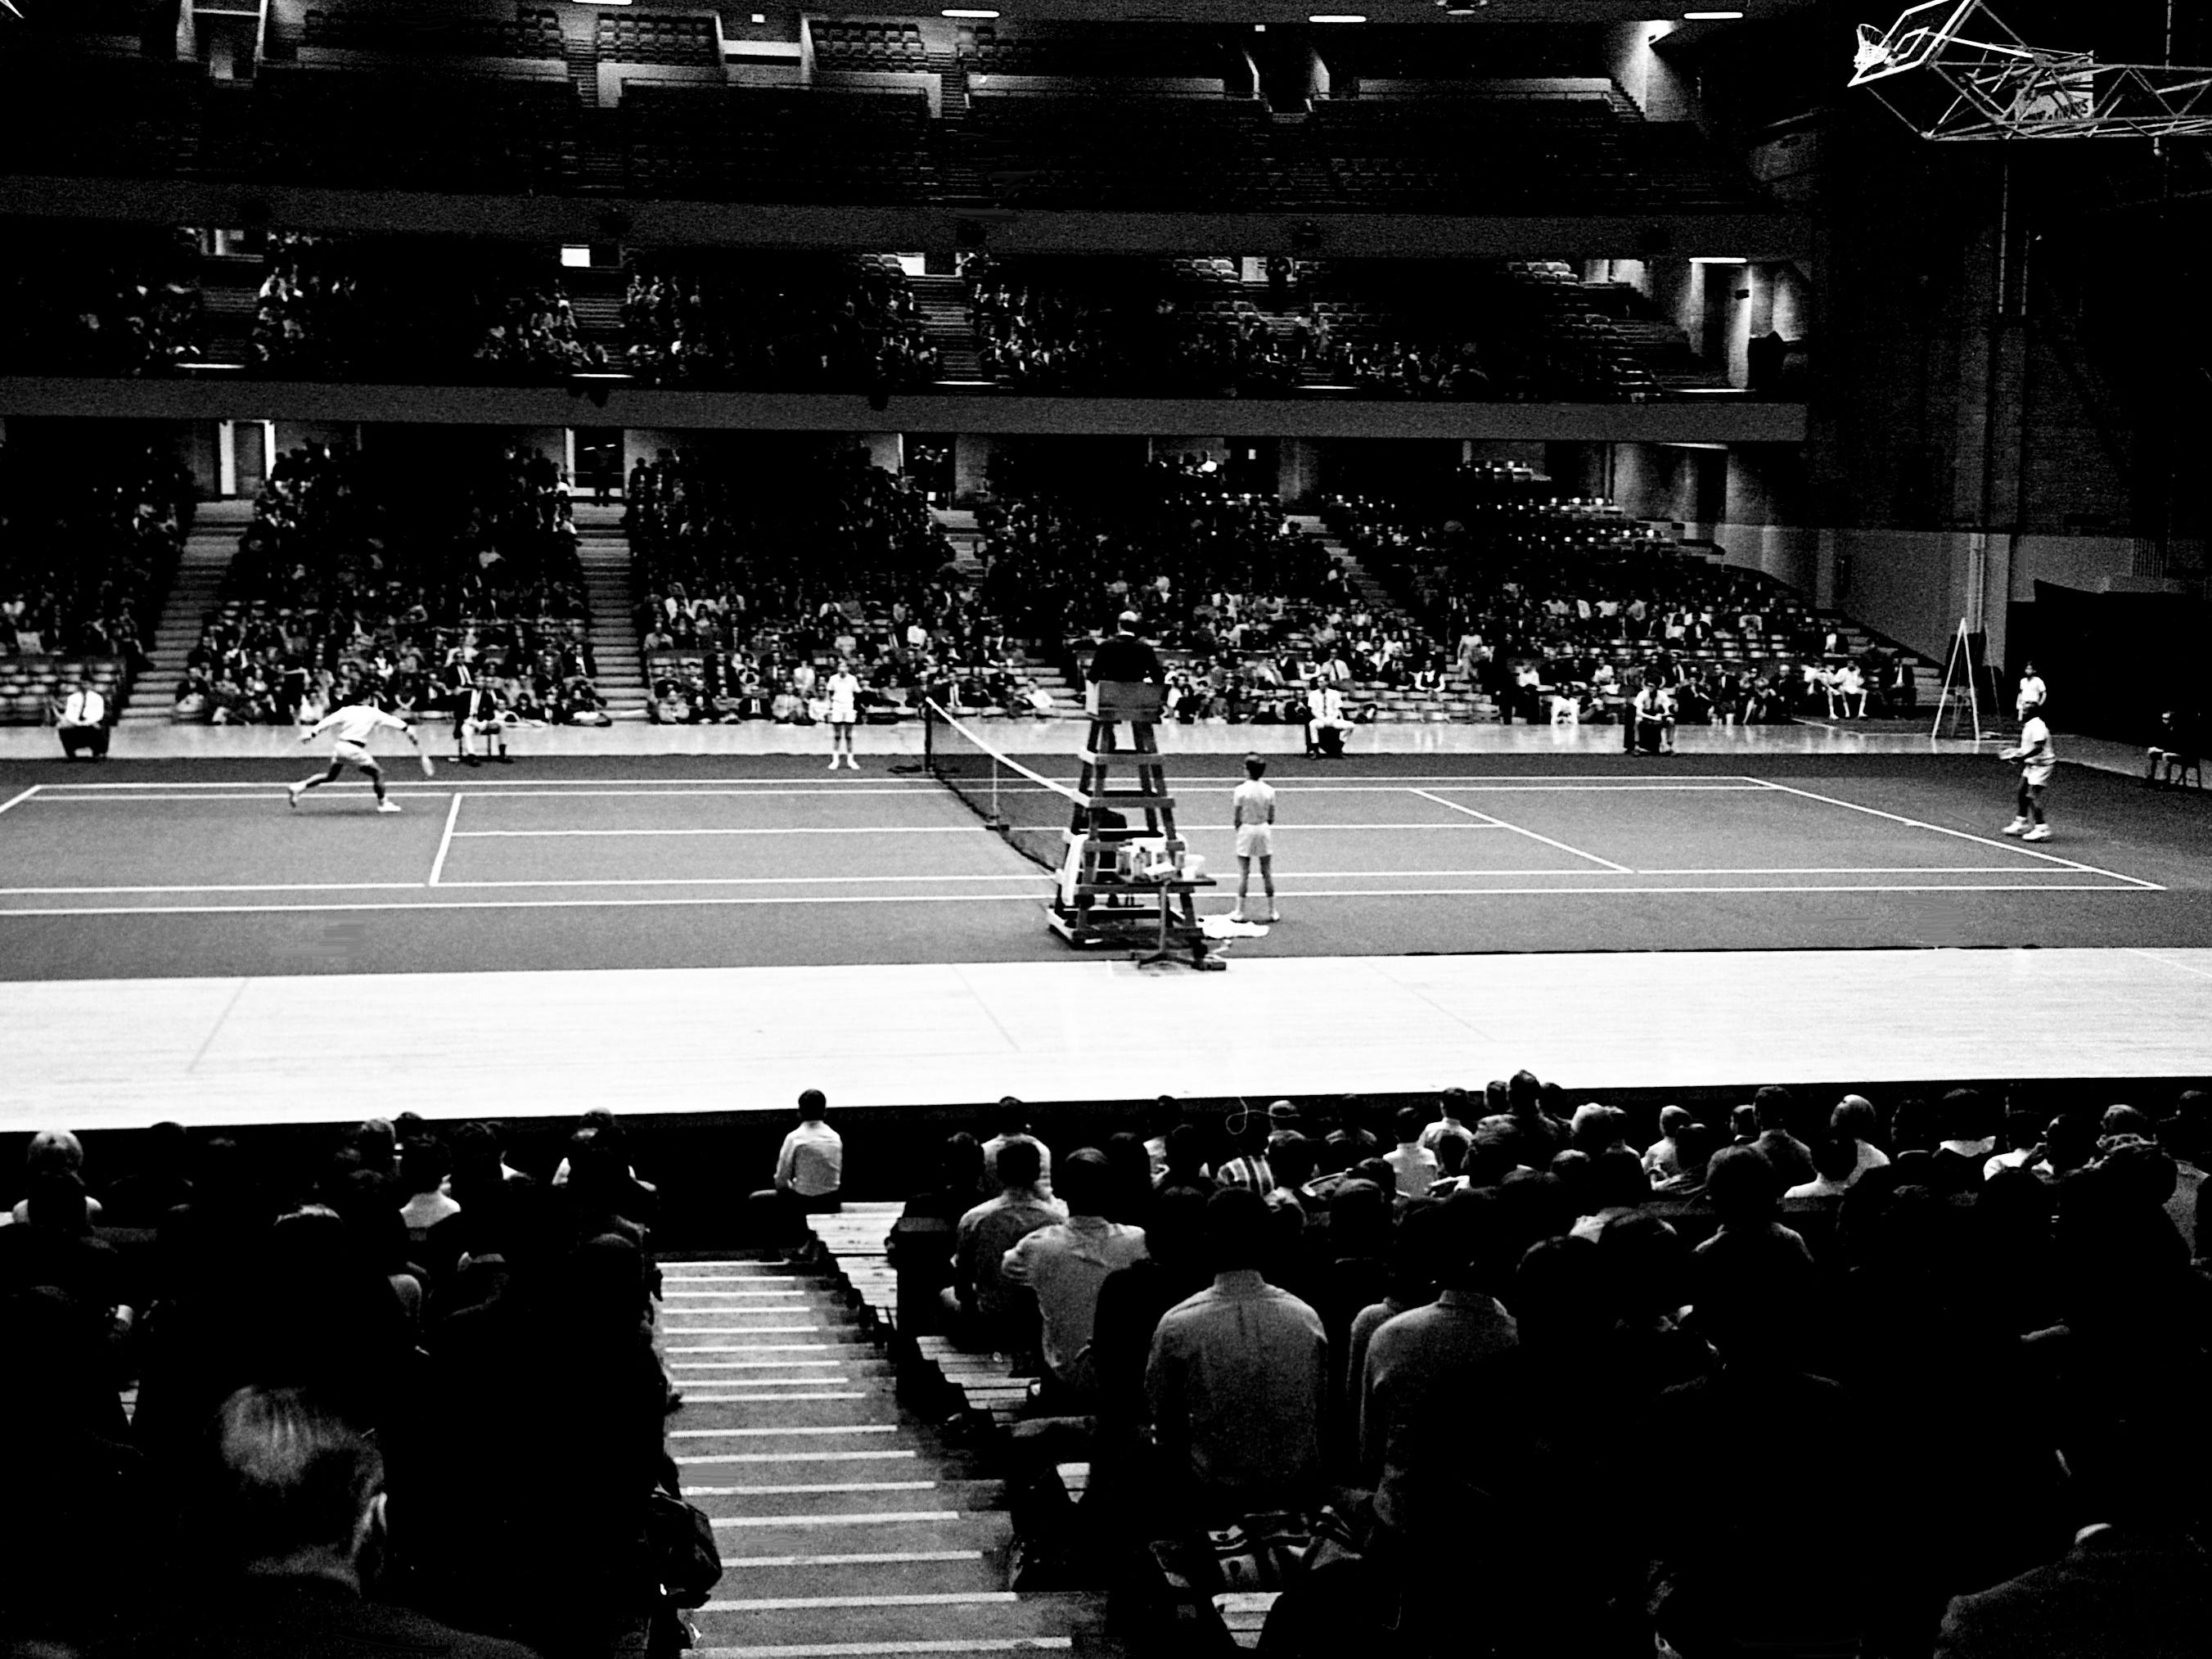 An opening night crowd of more than 4,000 watches as Pancho Segura and Ken Rosewall play the first match of the Dixie Tennis Classic at Vanderbilt's Memorial Gym on Dec. 7, 1968. Rosewall won 6-1, 6-2.